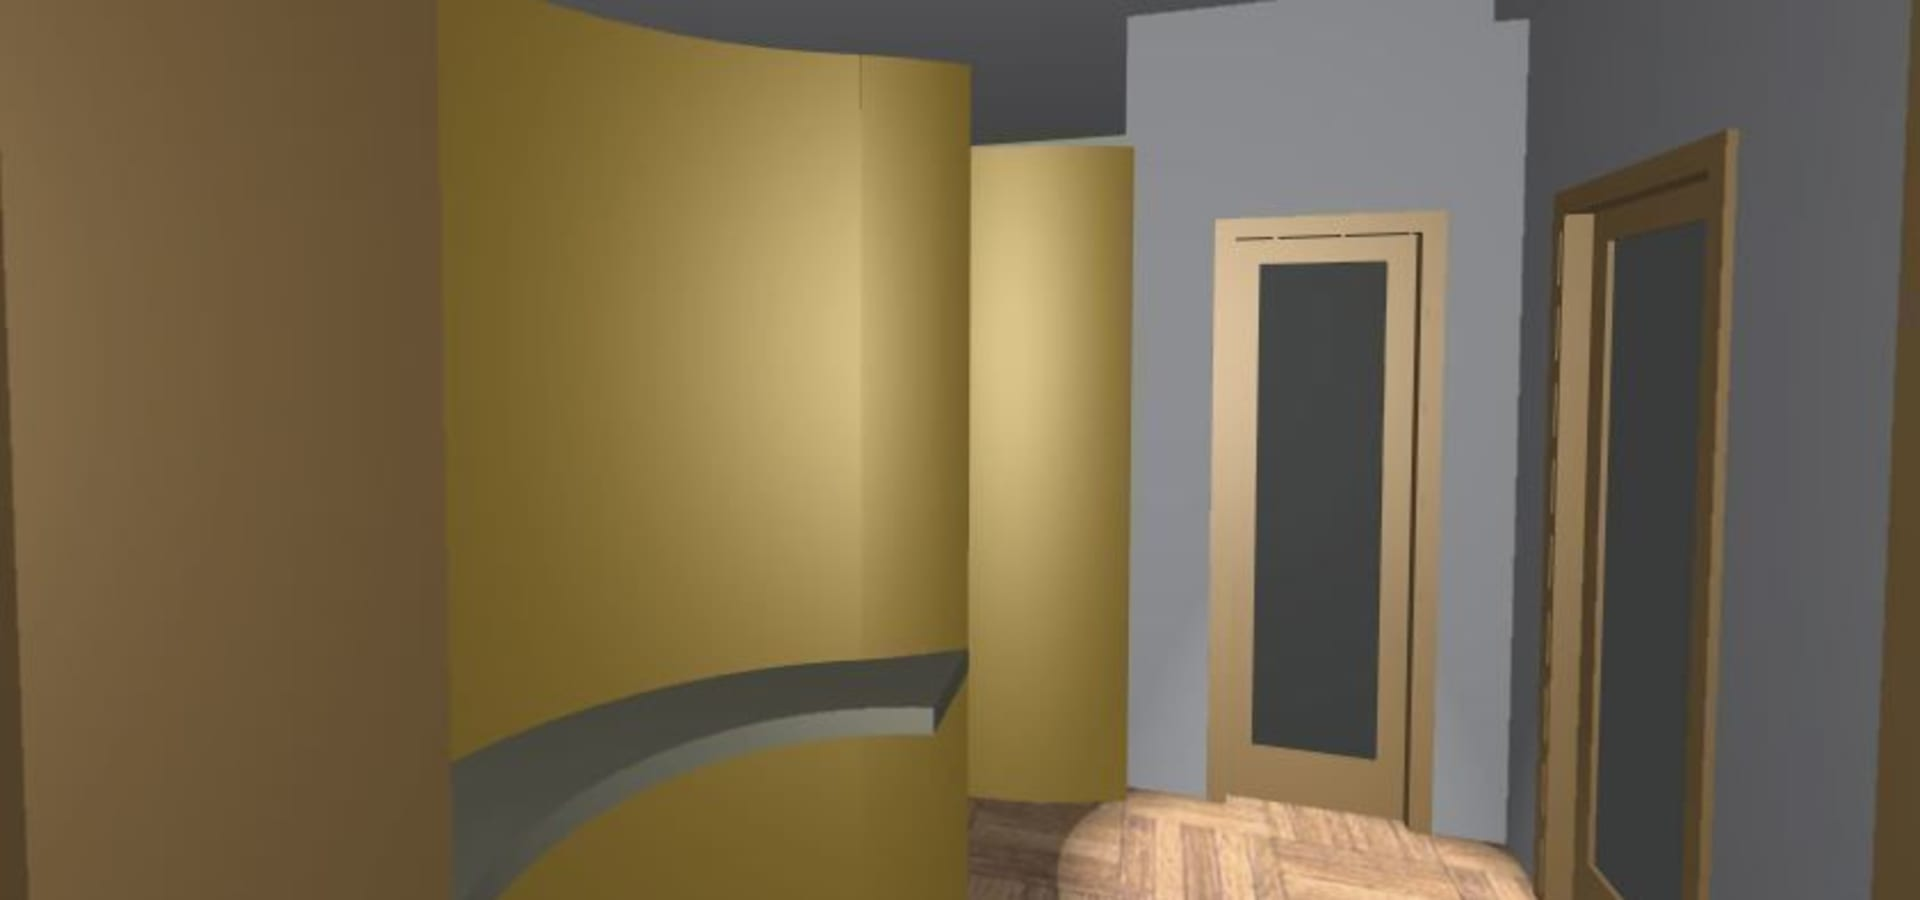 Studio Professionale: Hall curva color oro by Architettura Design ...